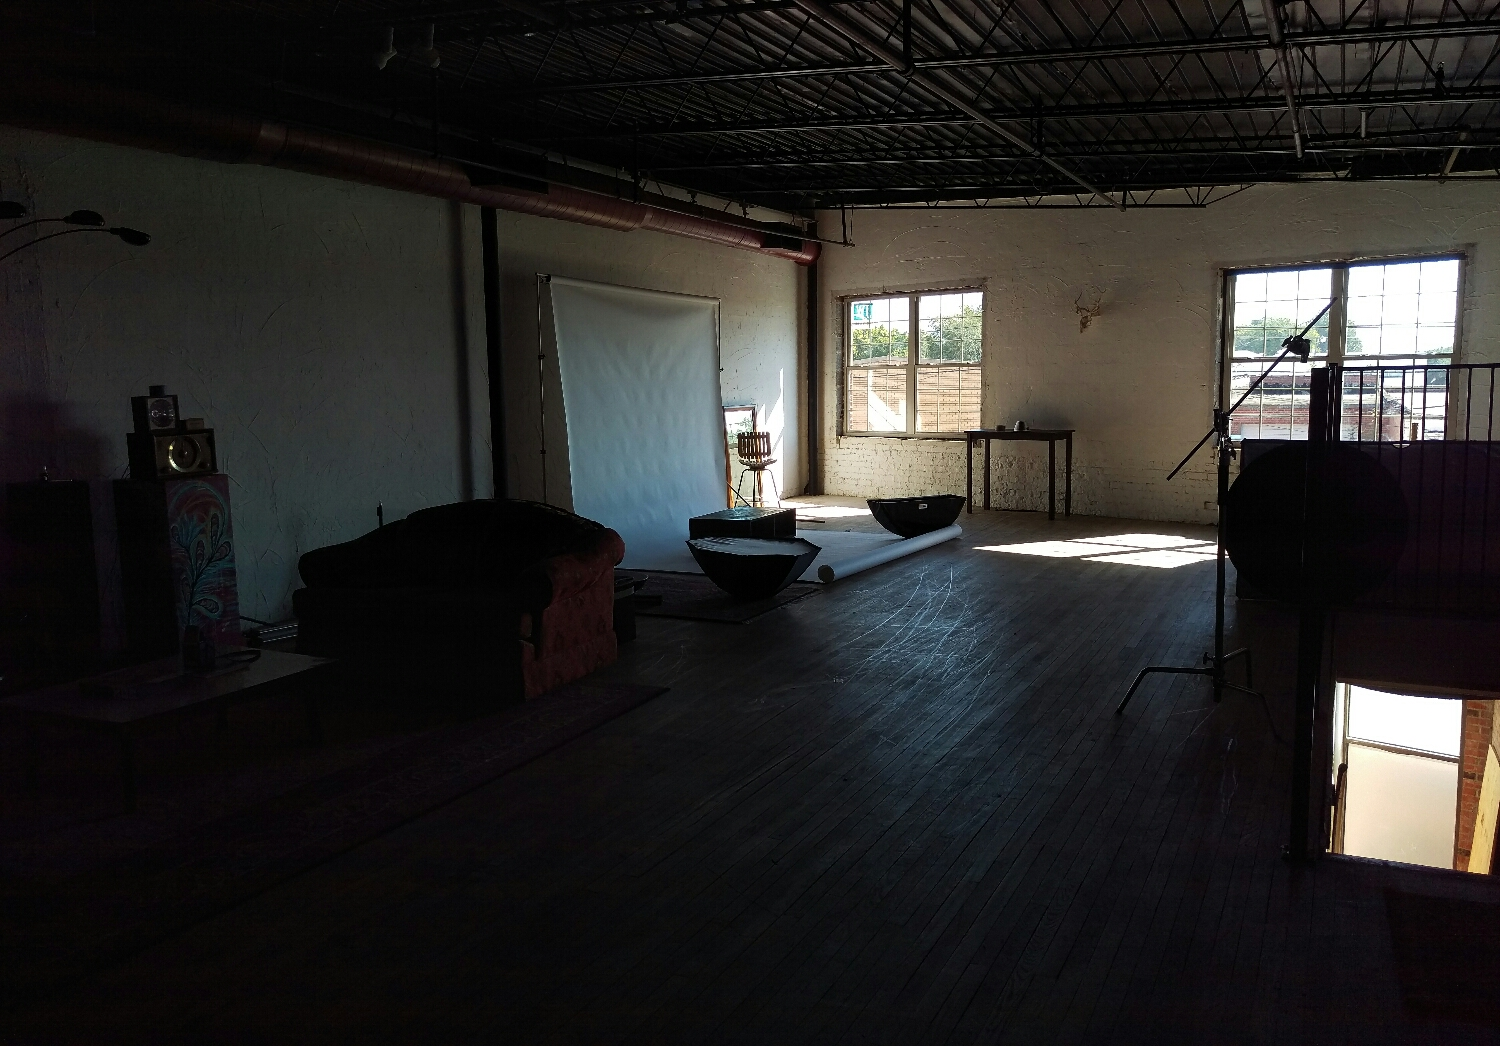 a view of the new space